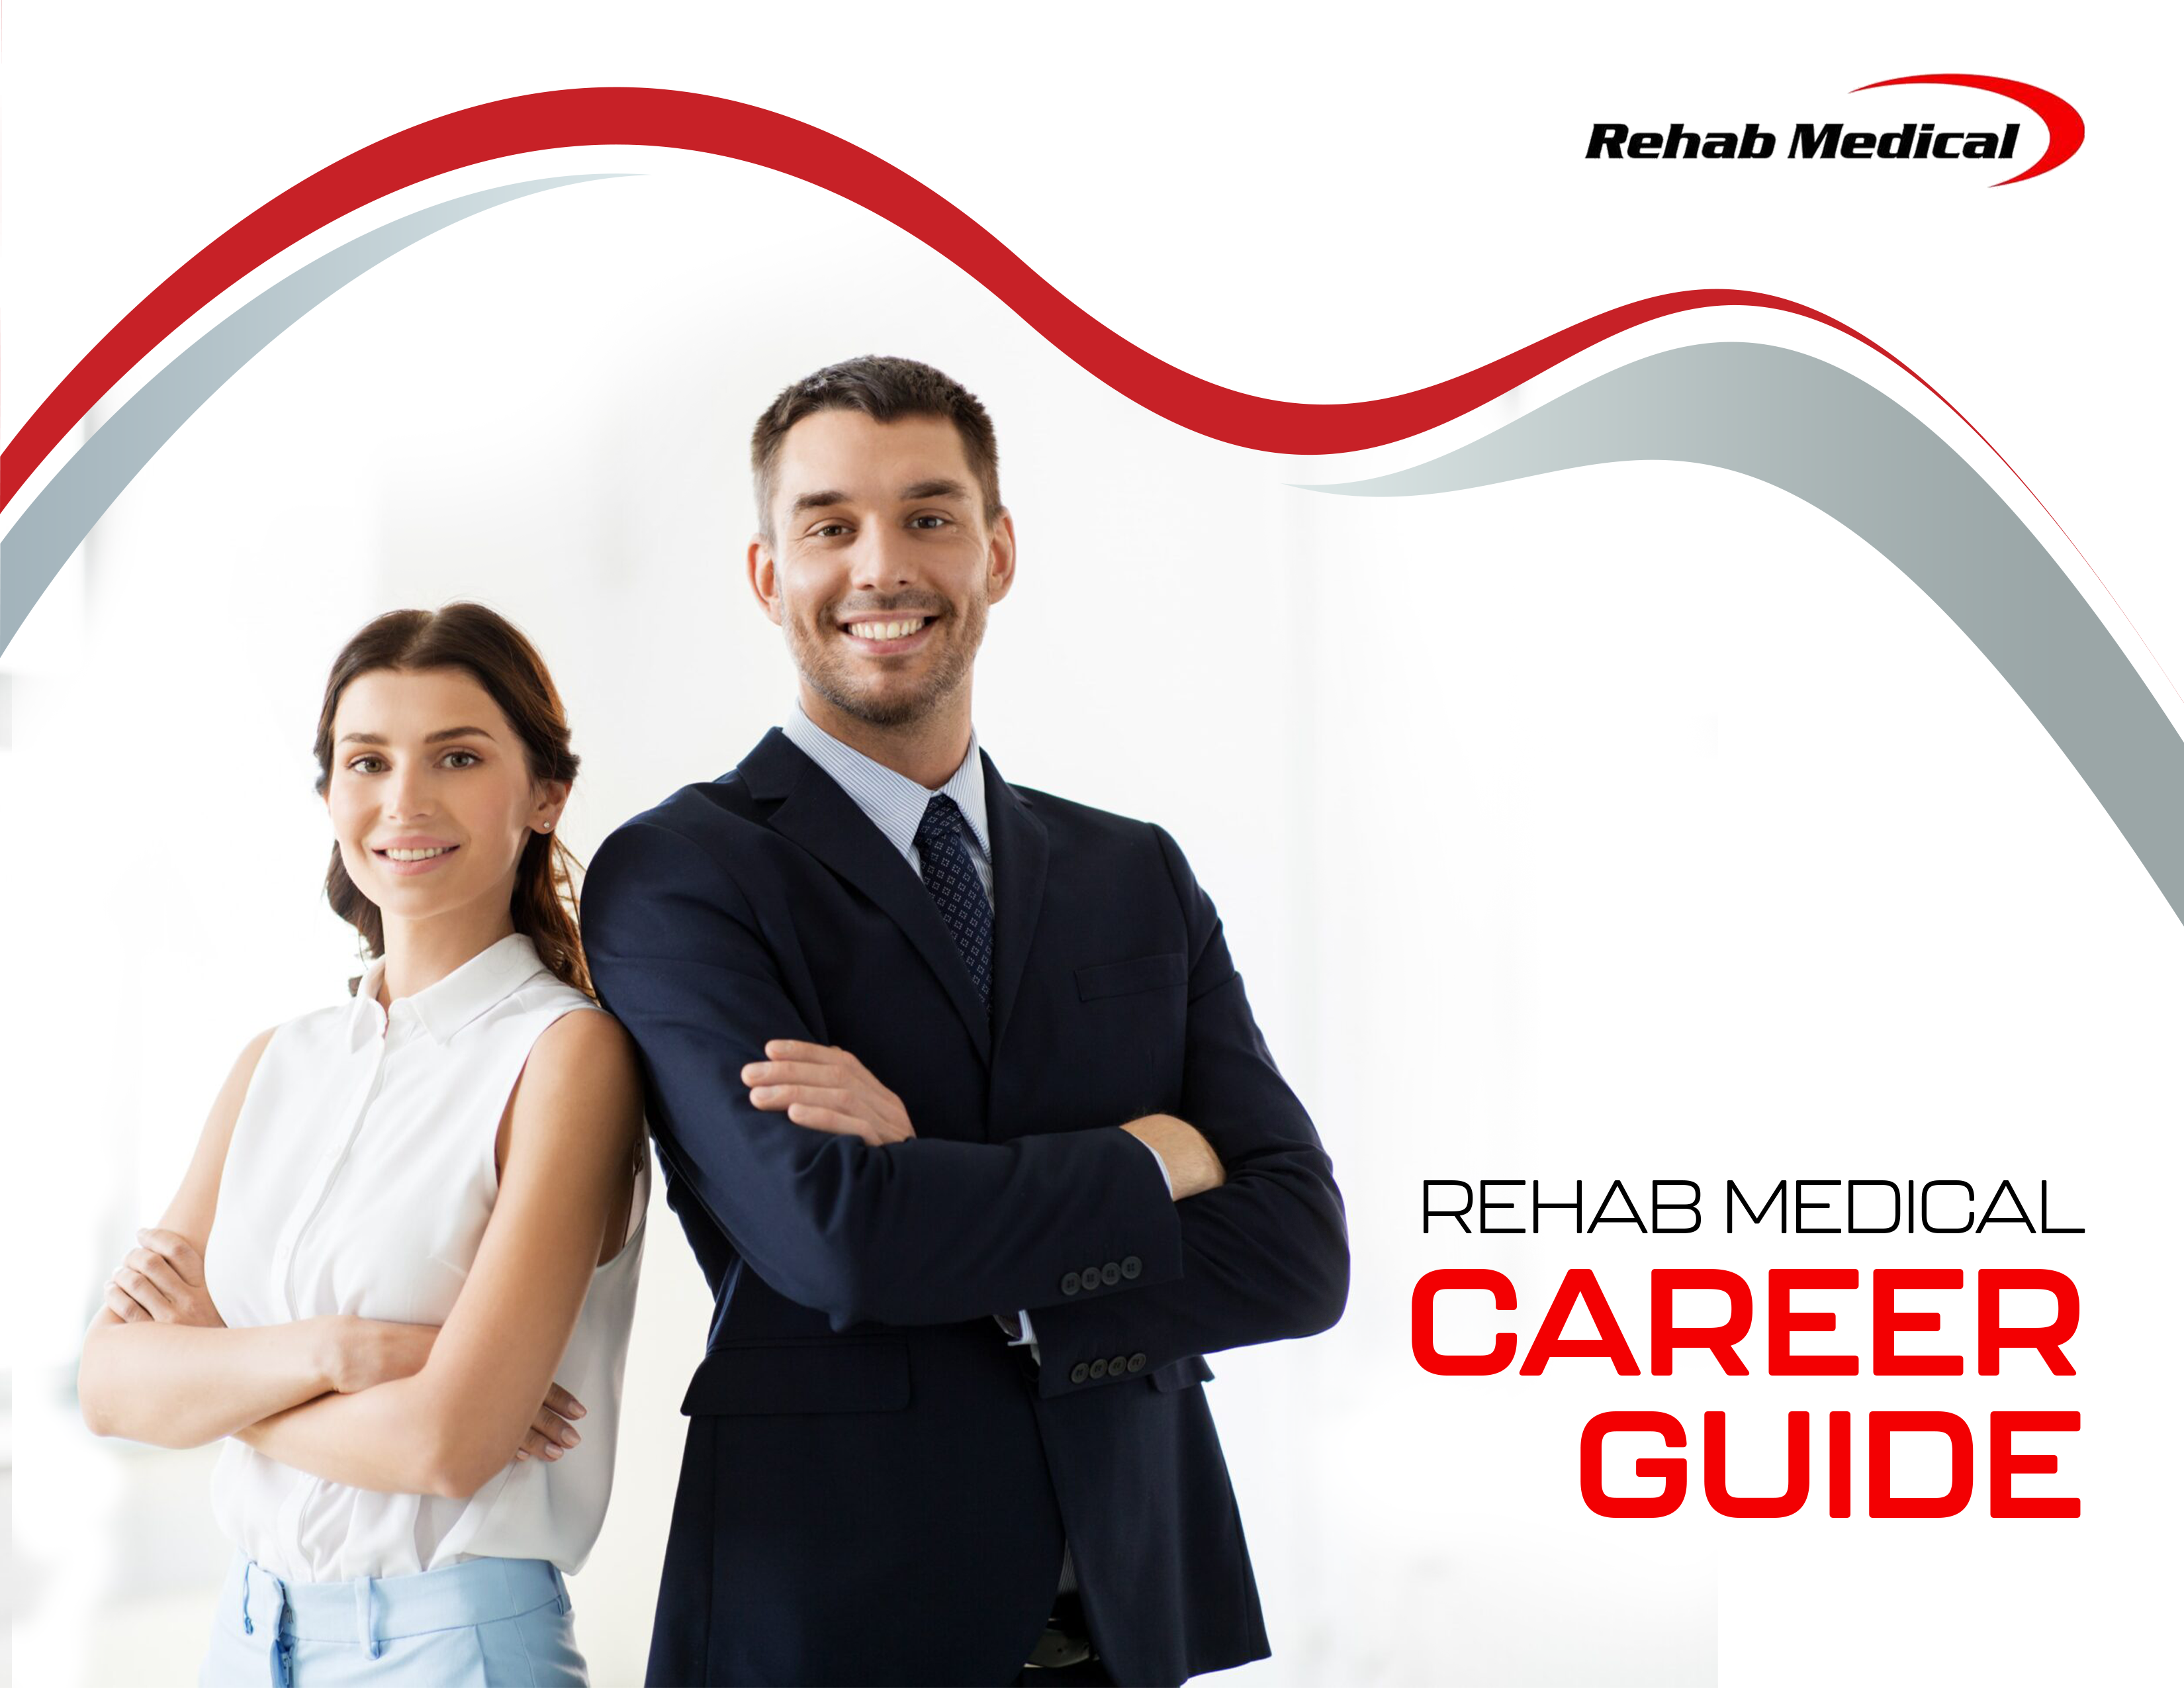 Career Guide Cover Page